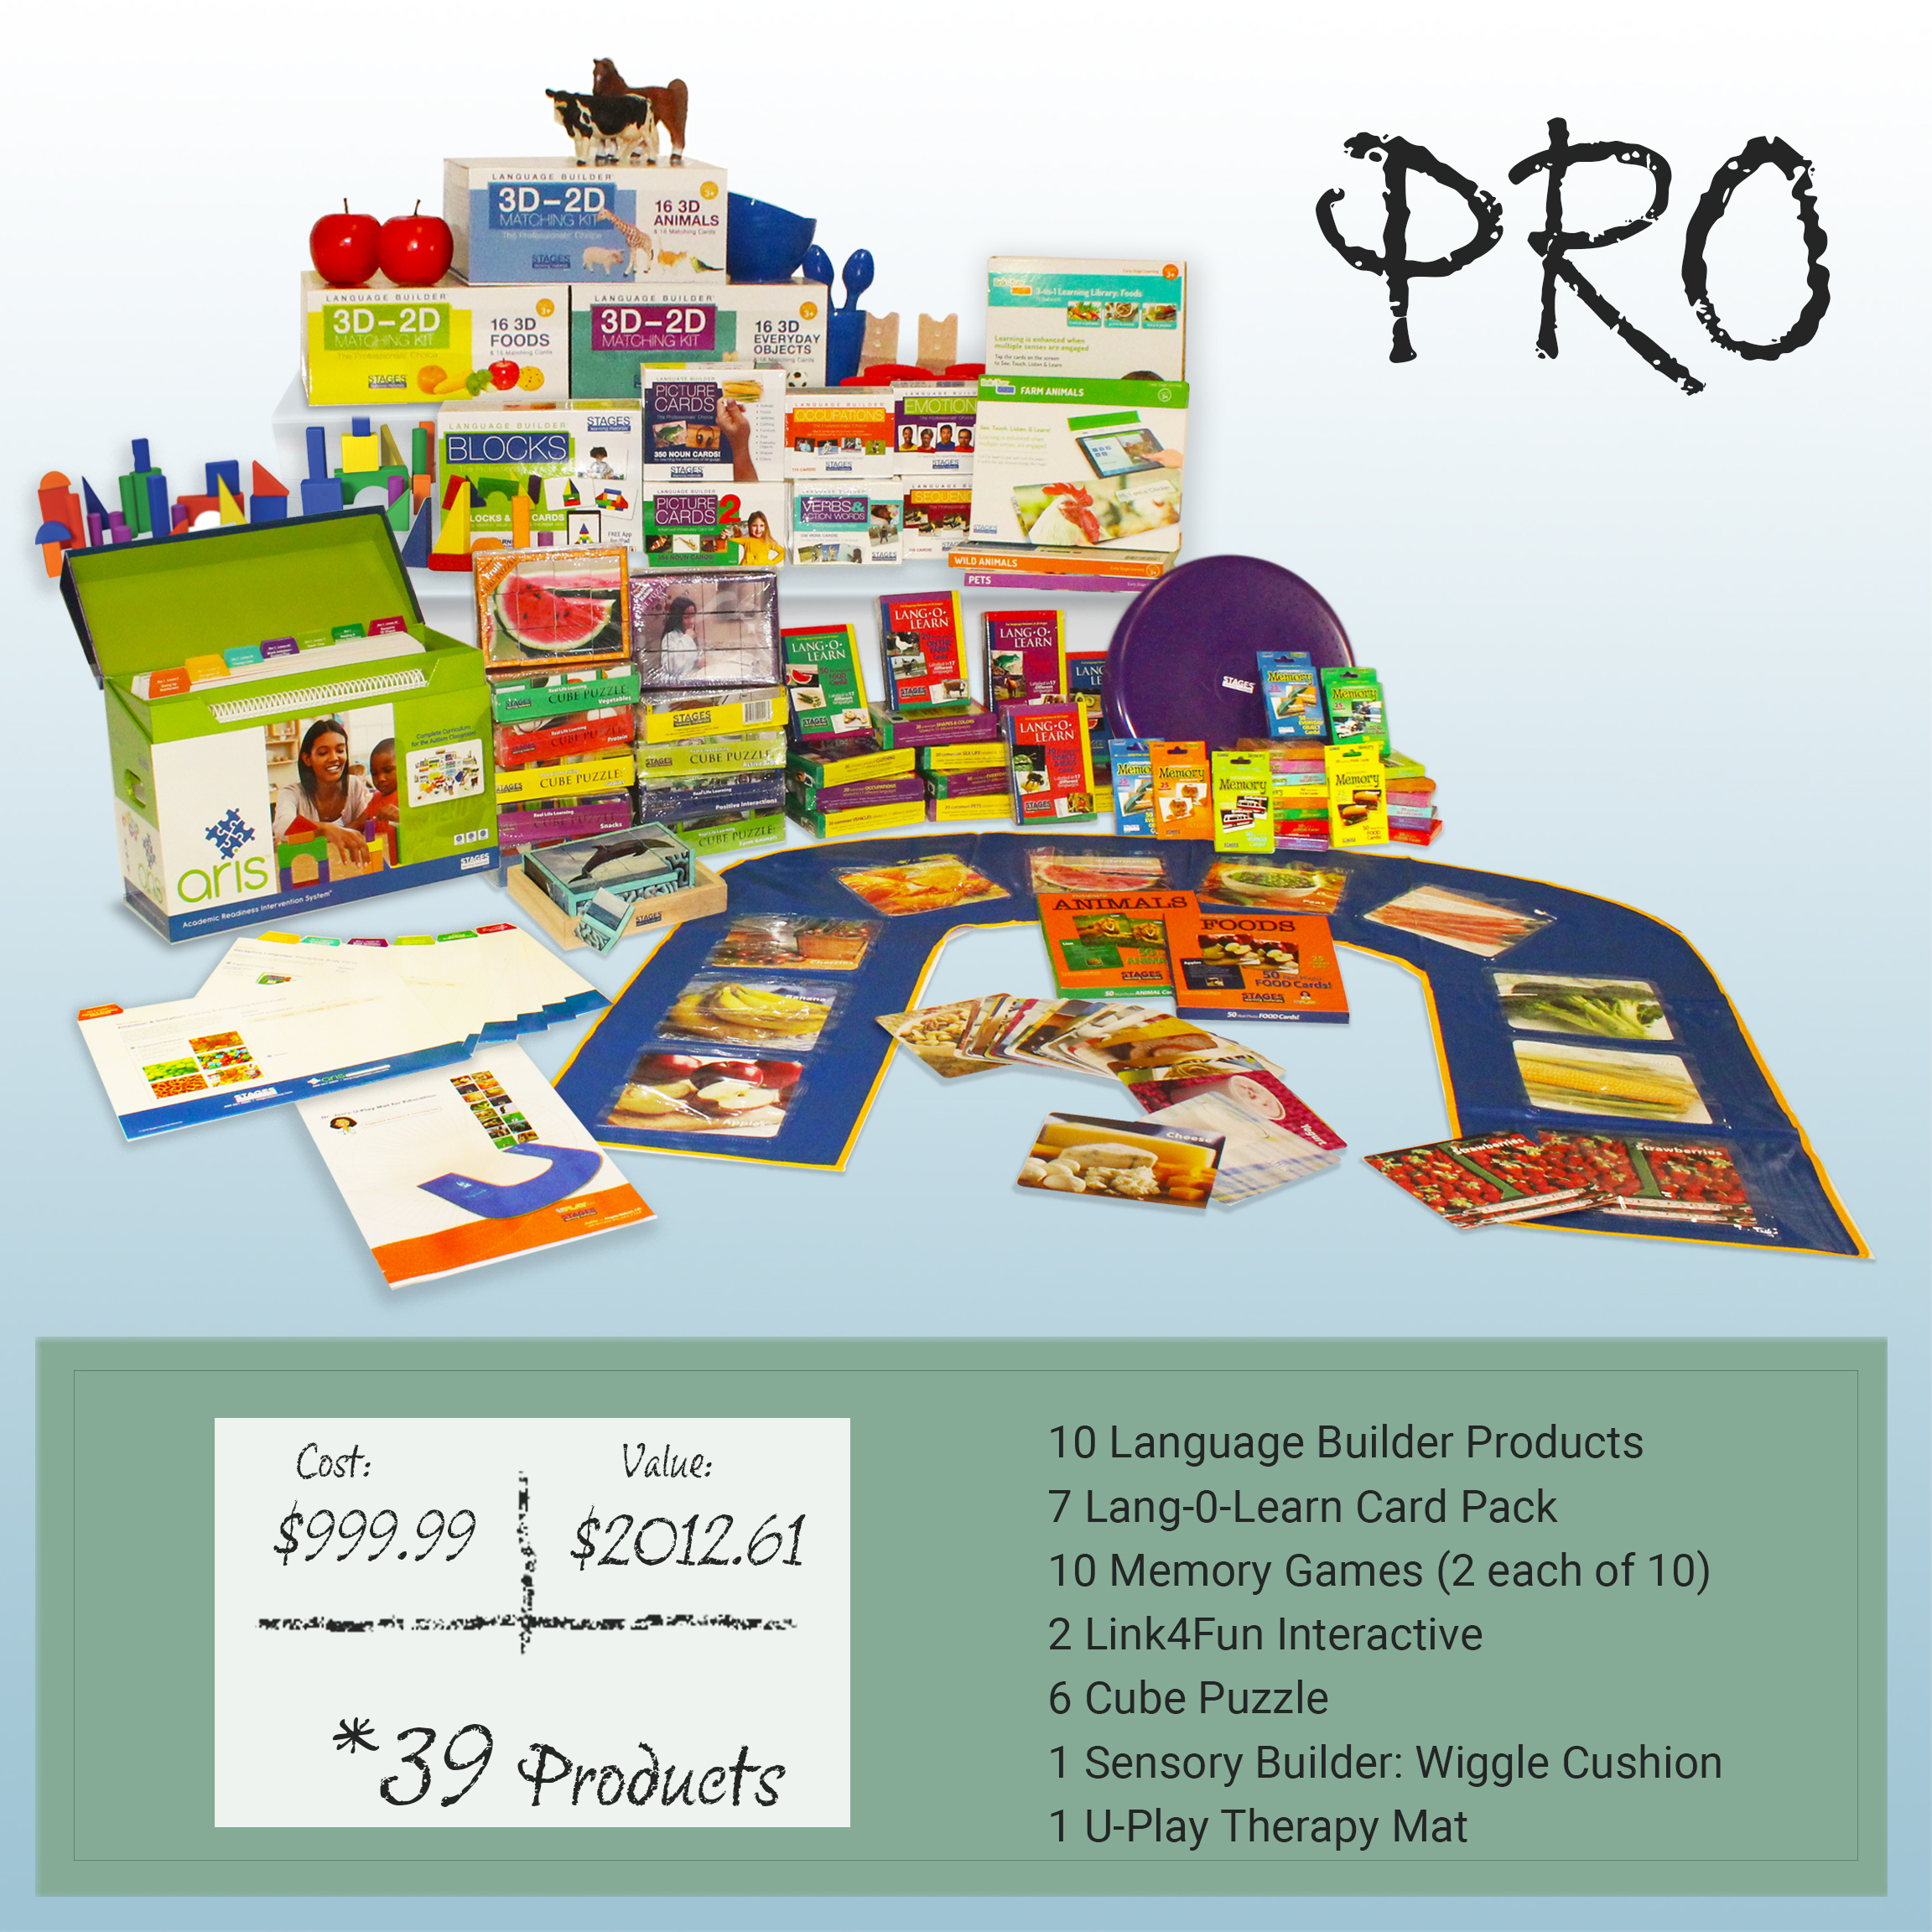 Post-it note with the price of the Pro Kit. Value is $2012.61. Cost is $99.99. Includes 39 products